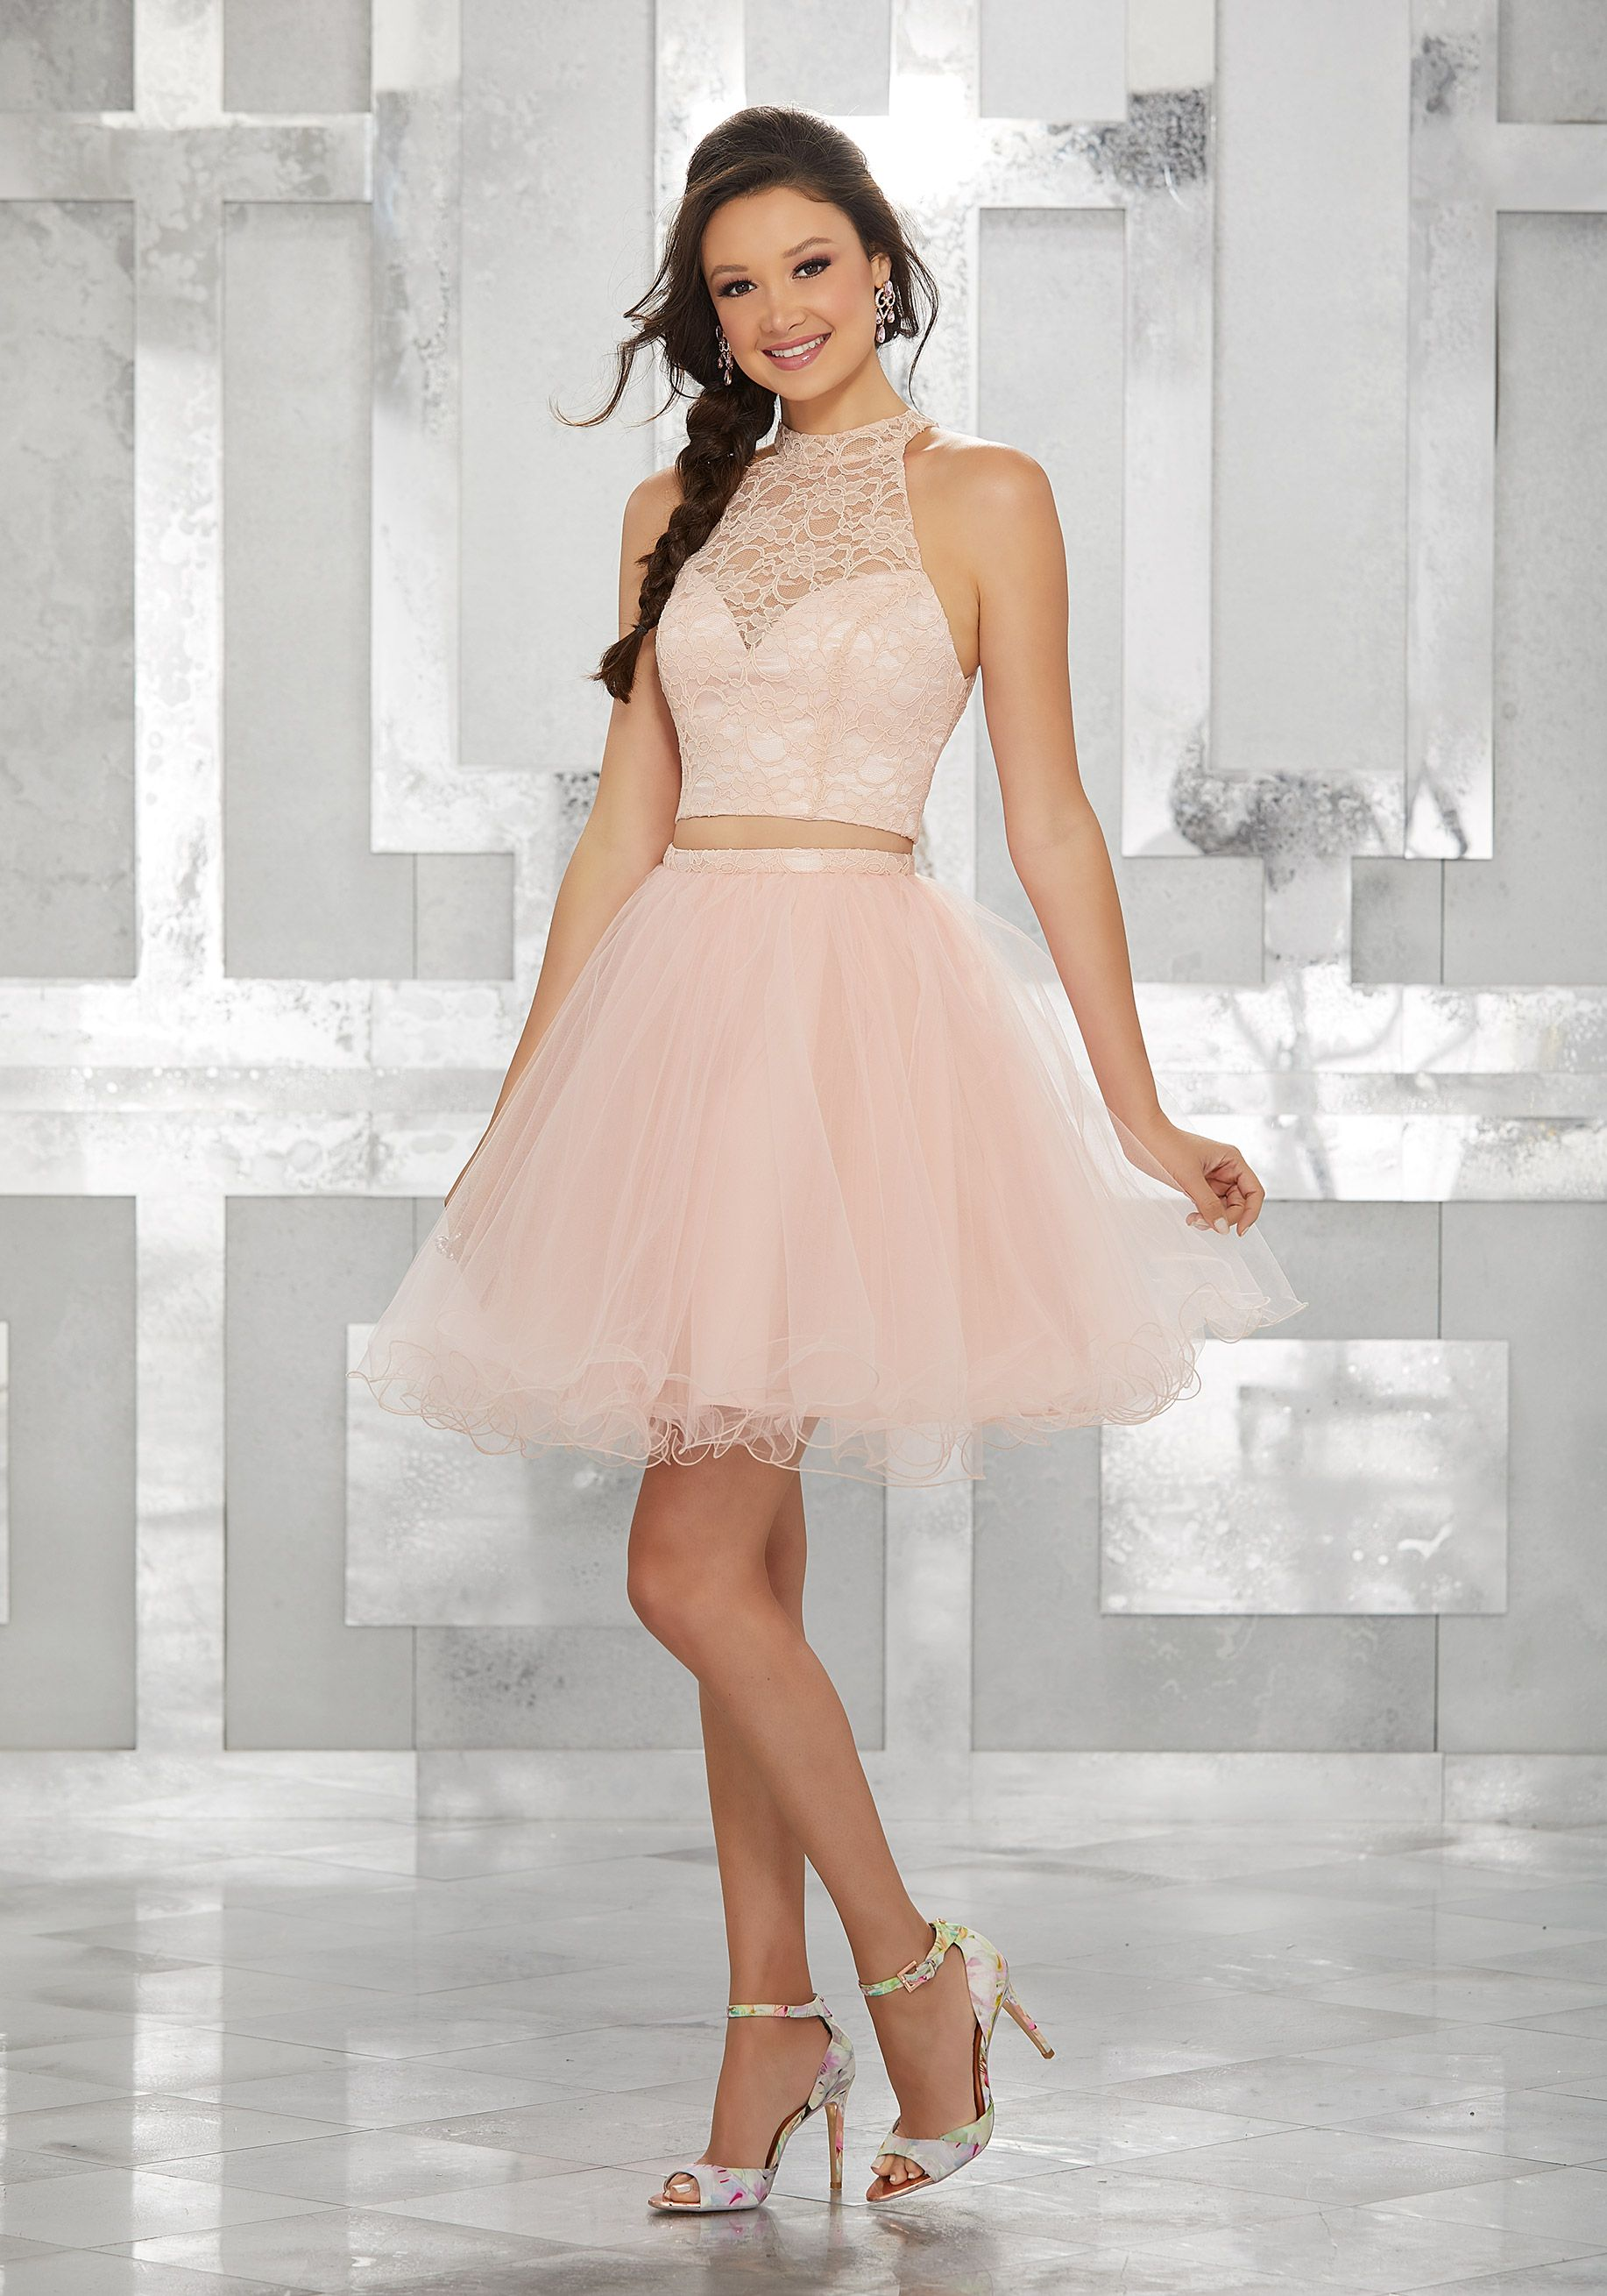 93b594ae0 Dama dress for quince